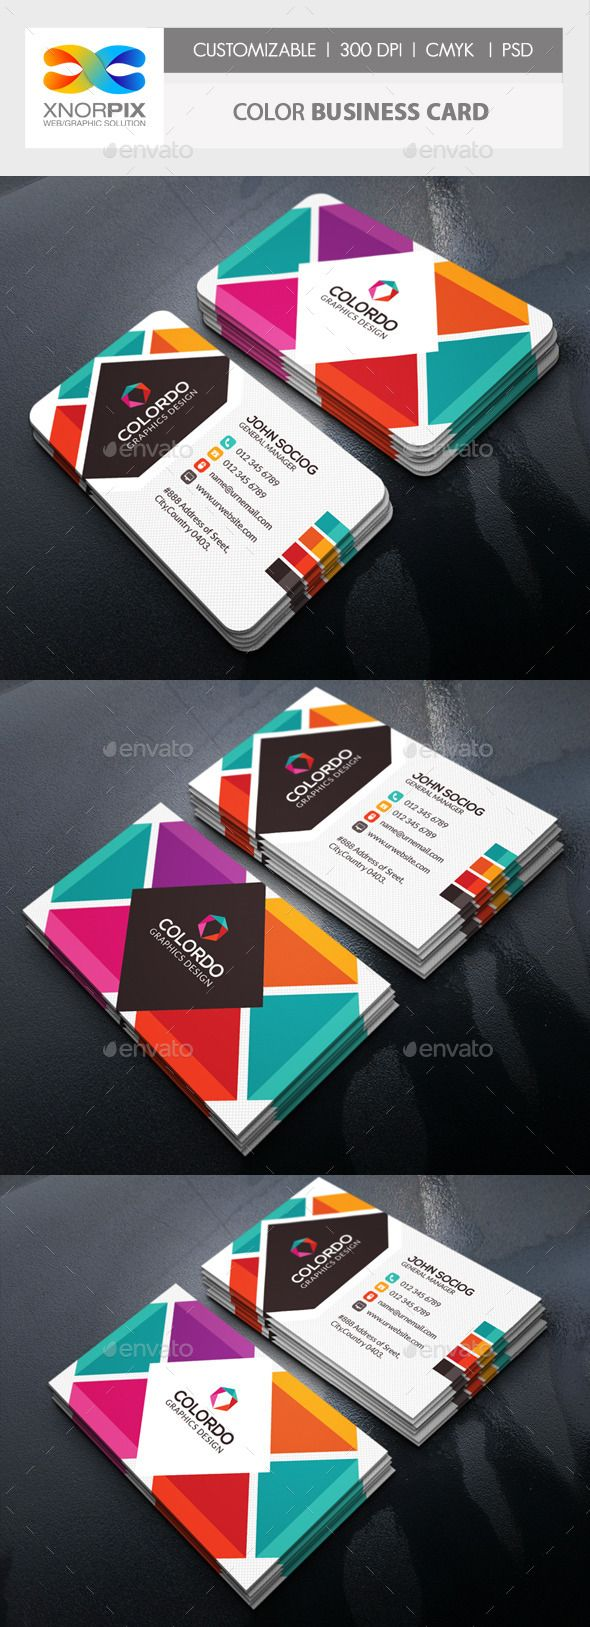 54 best ✏ Business Card Templates images on Pinterest | Business ...